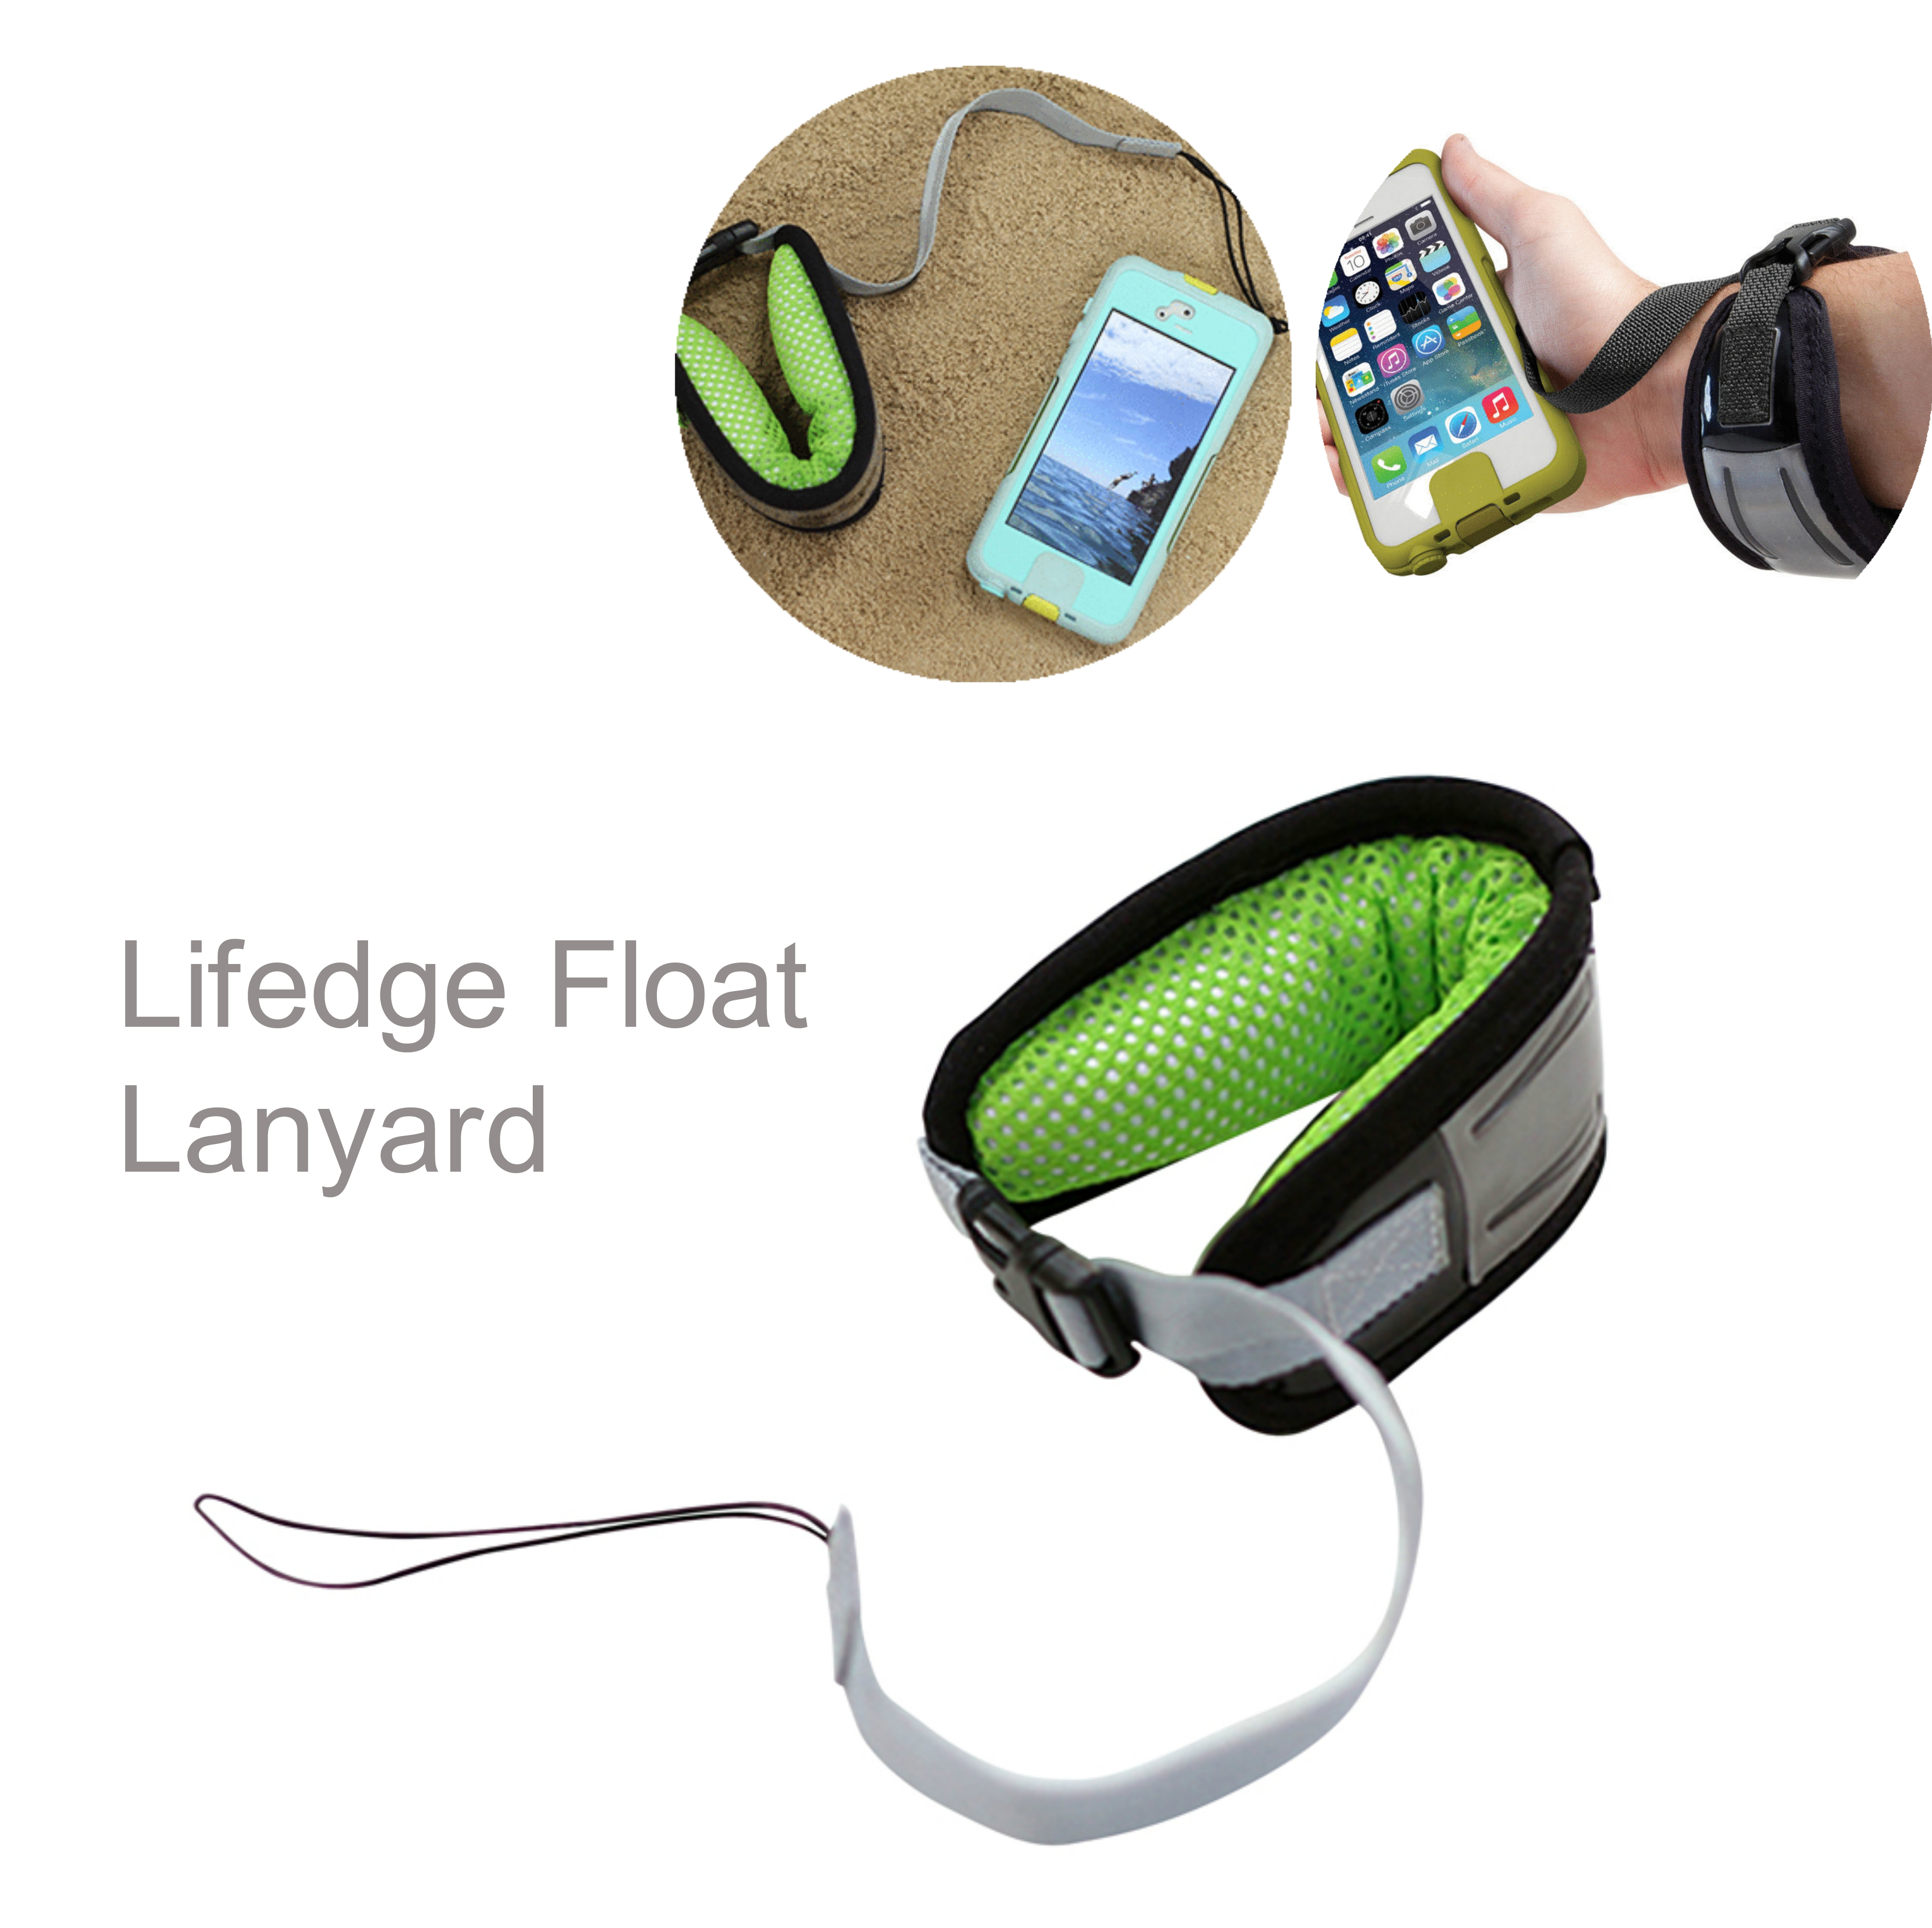 Lifedge Float Lanyard Day & Night Visible Buoyant Arm Band for Sailing Swiming